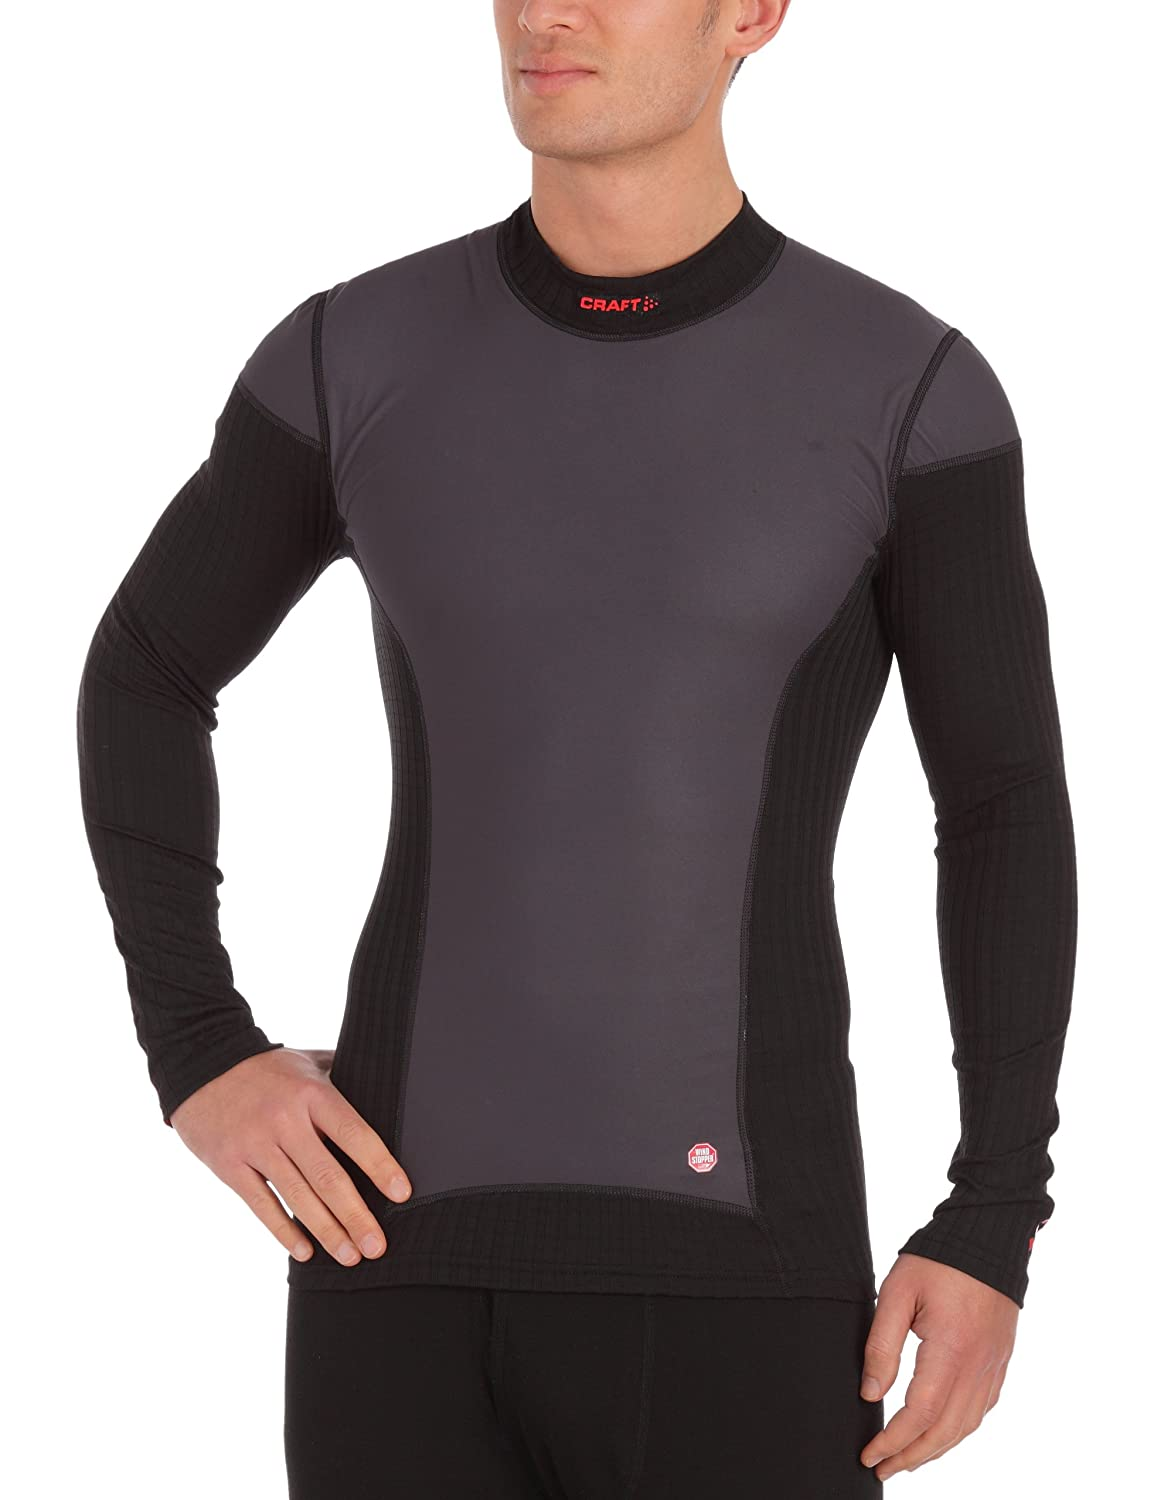 Craft Herren Funktionsunterwäsche Active Extreme Windstopper Longsleeve